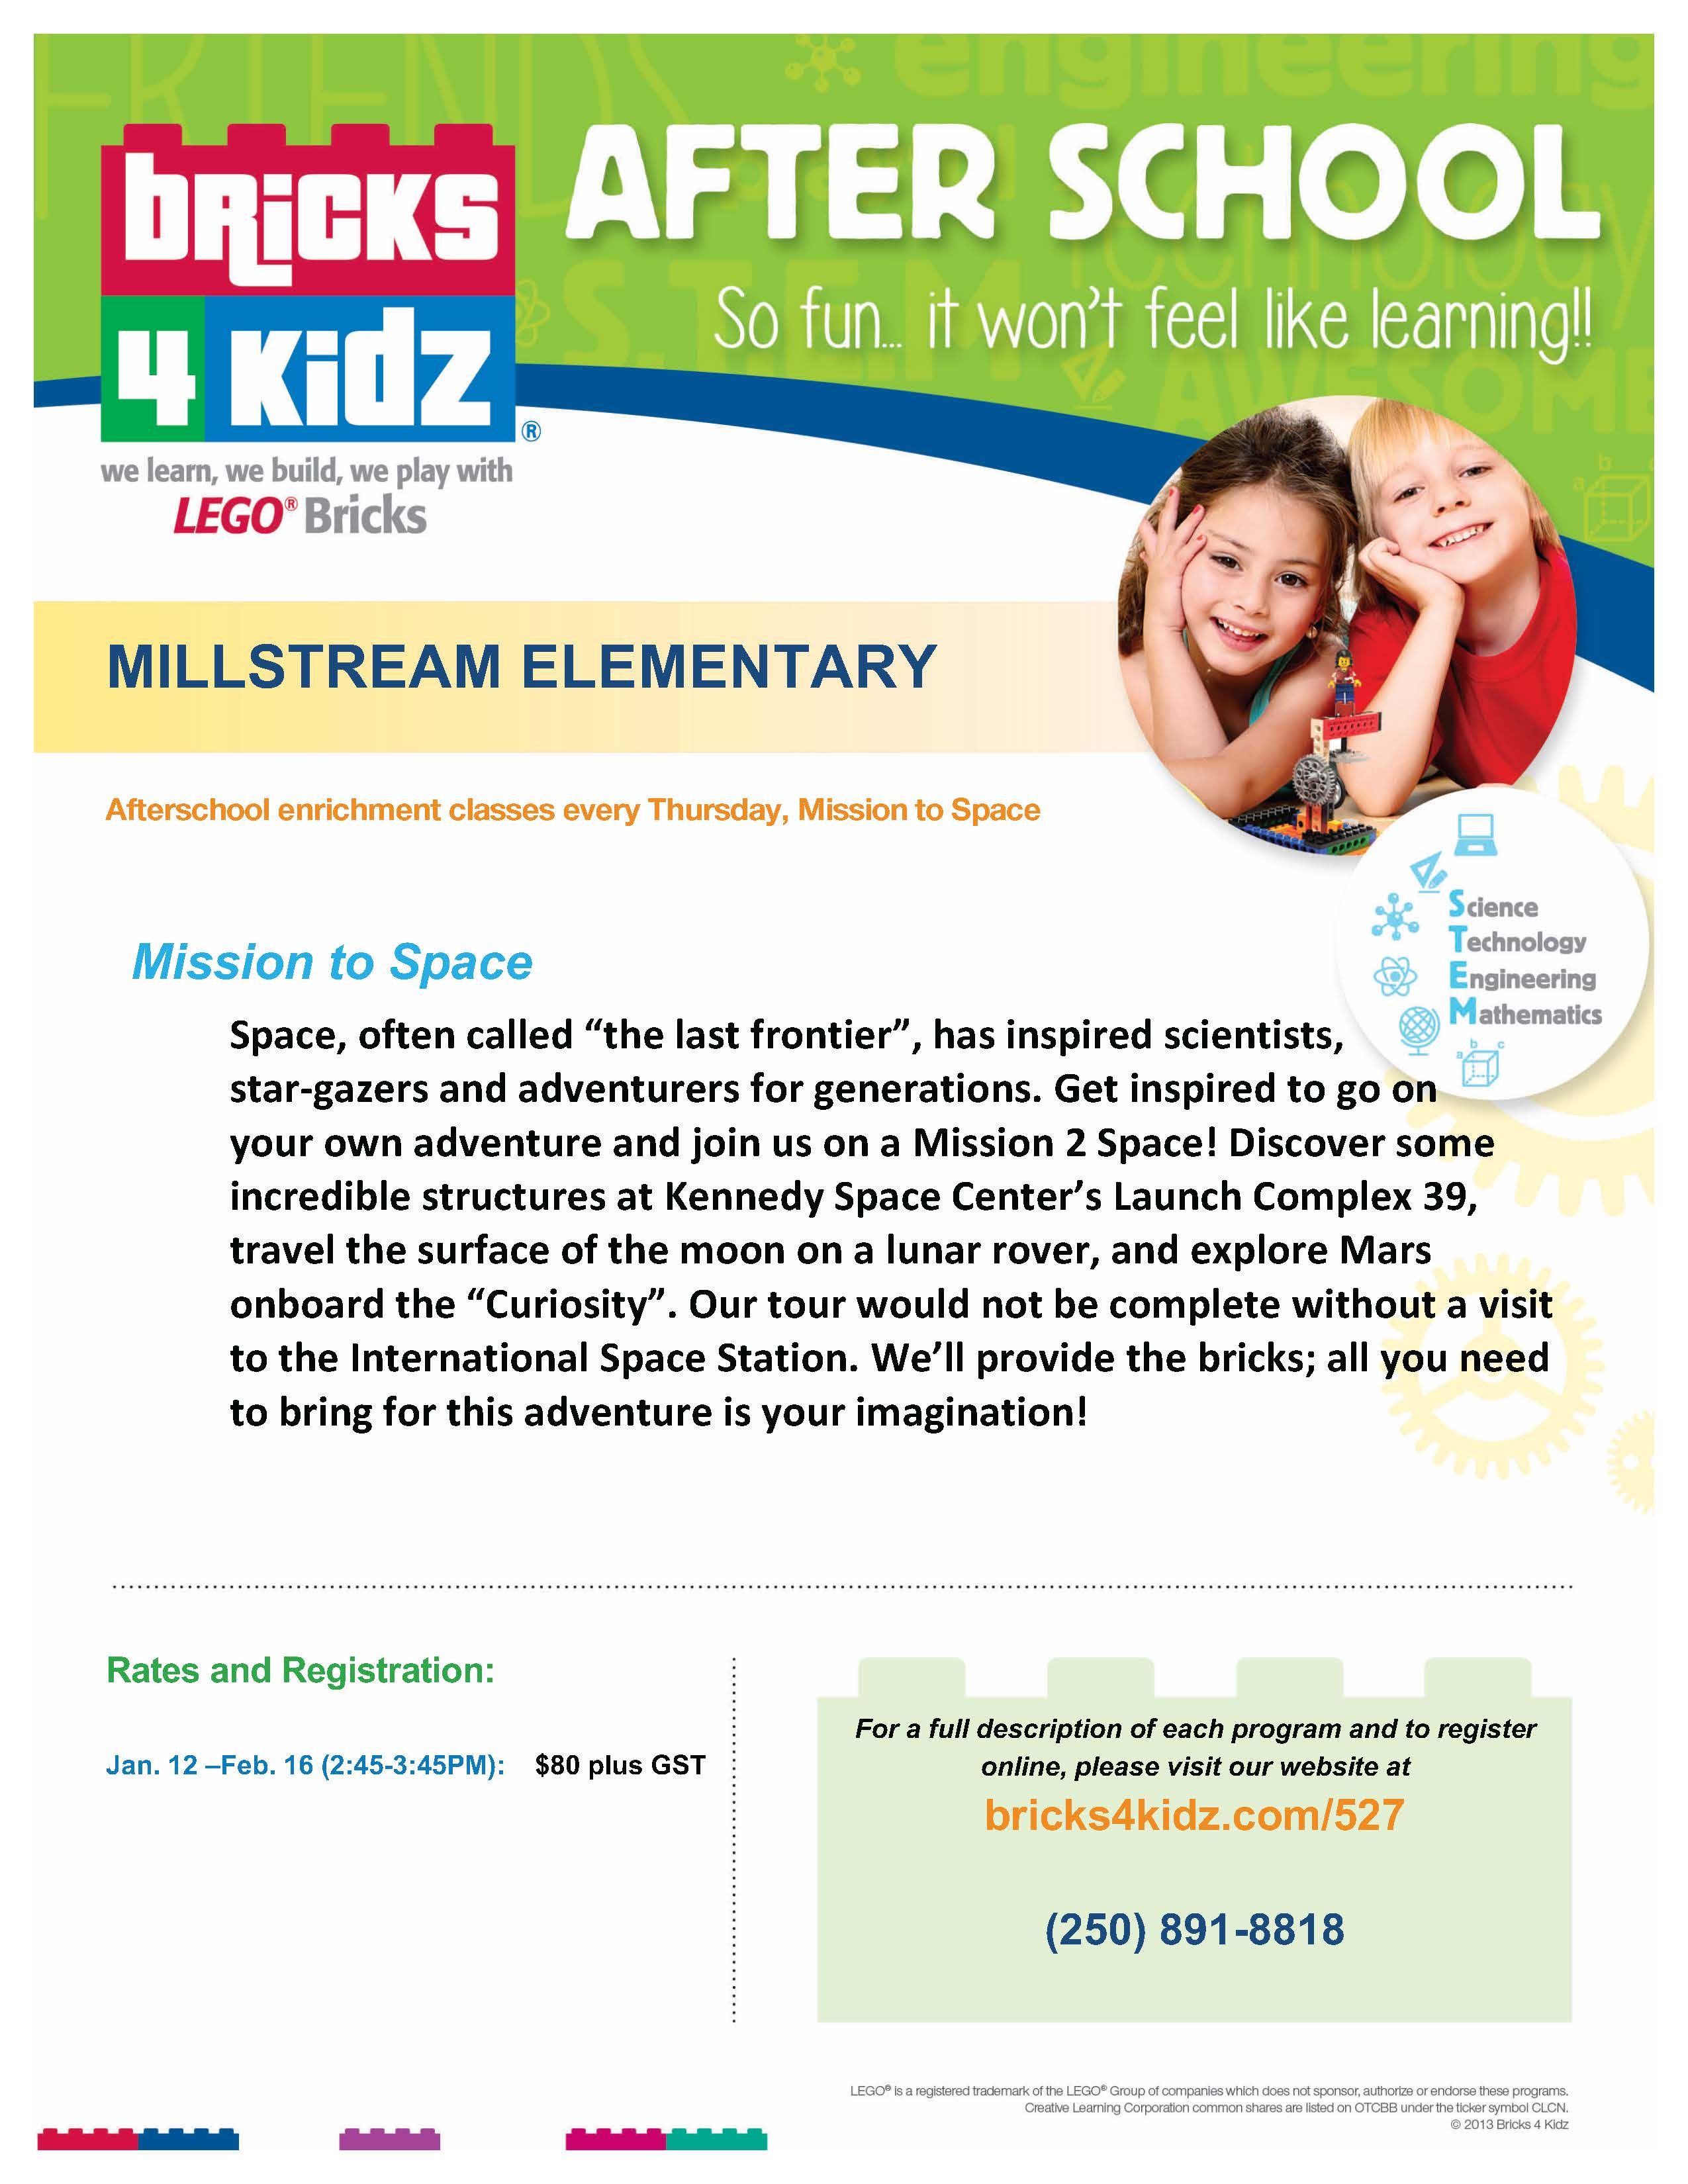 afterschool-millstream-mission-to-space